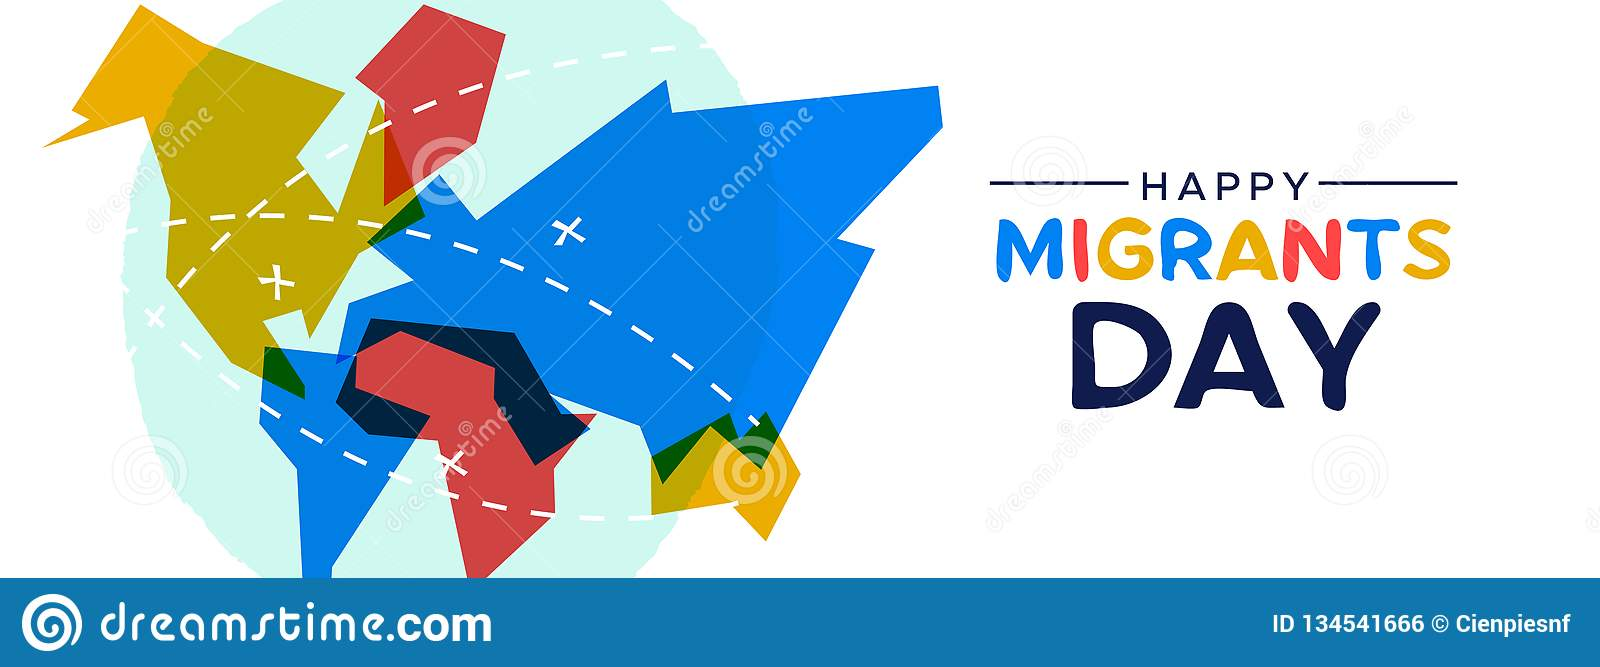 Migrant Day World Map Card For Immigration Concept Stock ... on